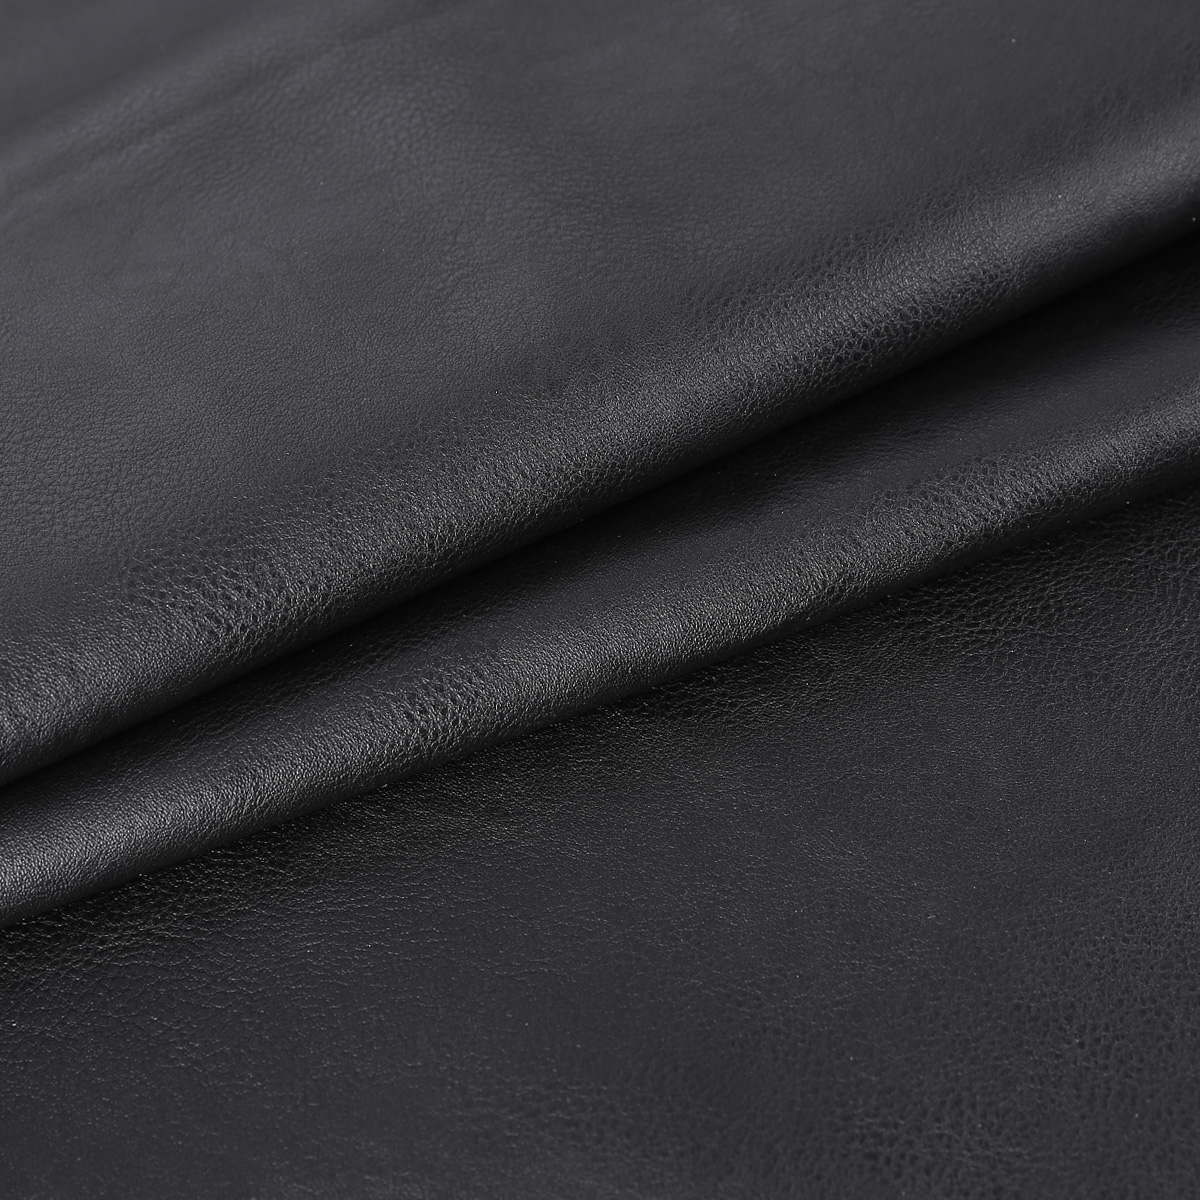 Leatherette Faux Leather Cloth Upholstery Fabric Material